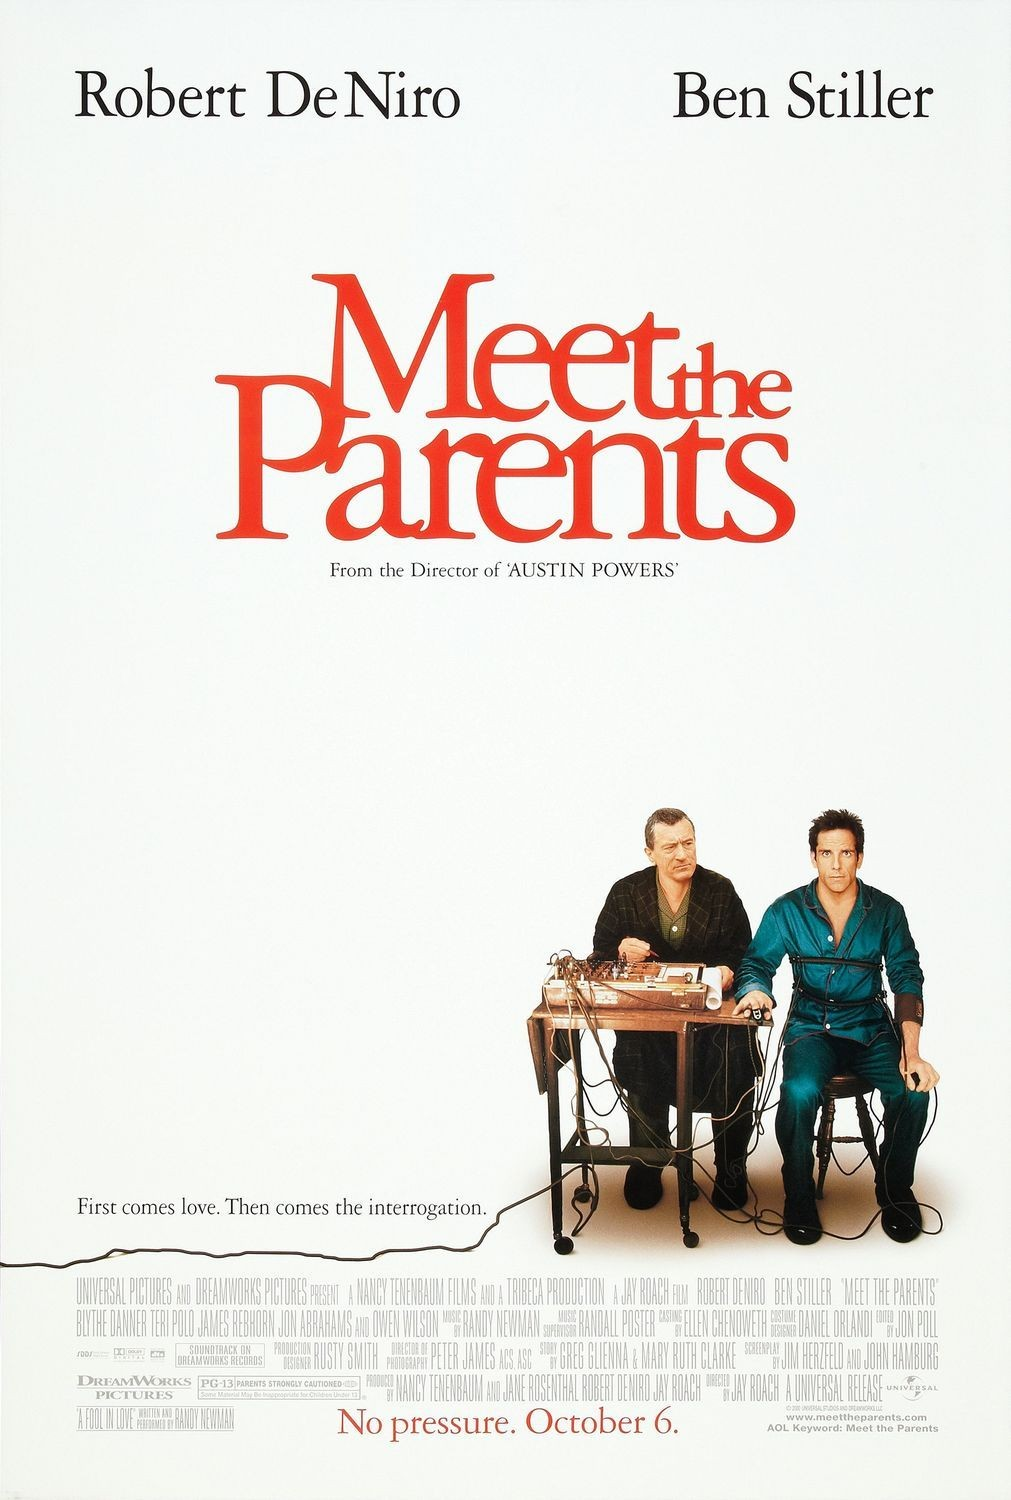 15 Things You Didn't Know About 'Meet the Parents'